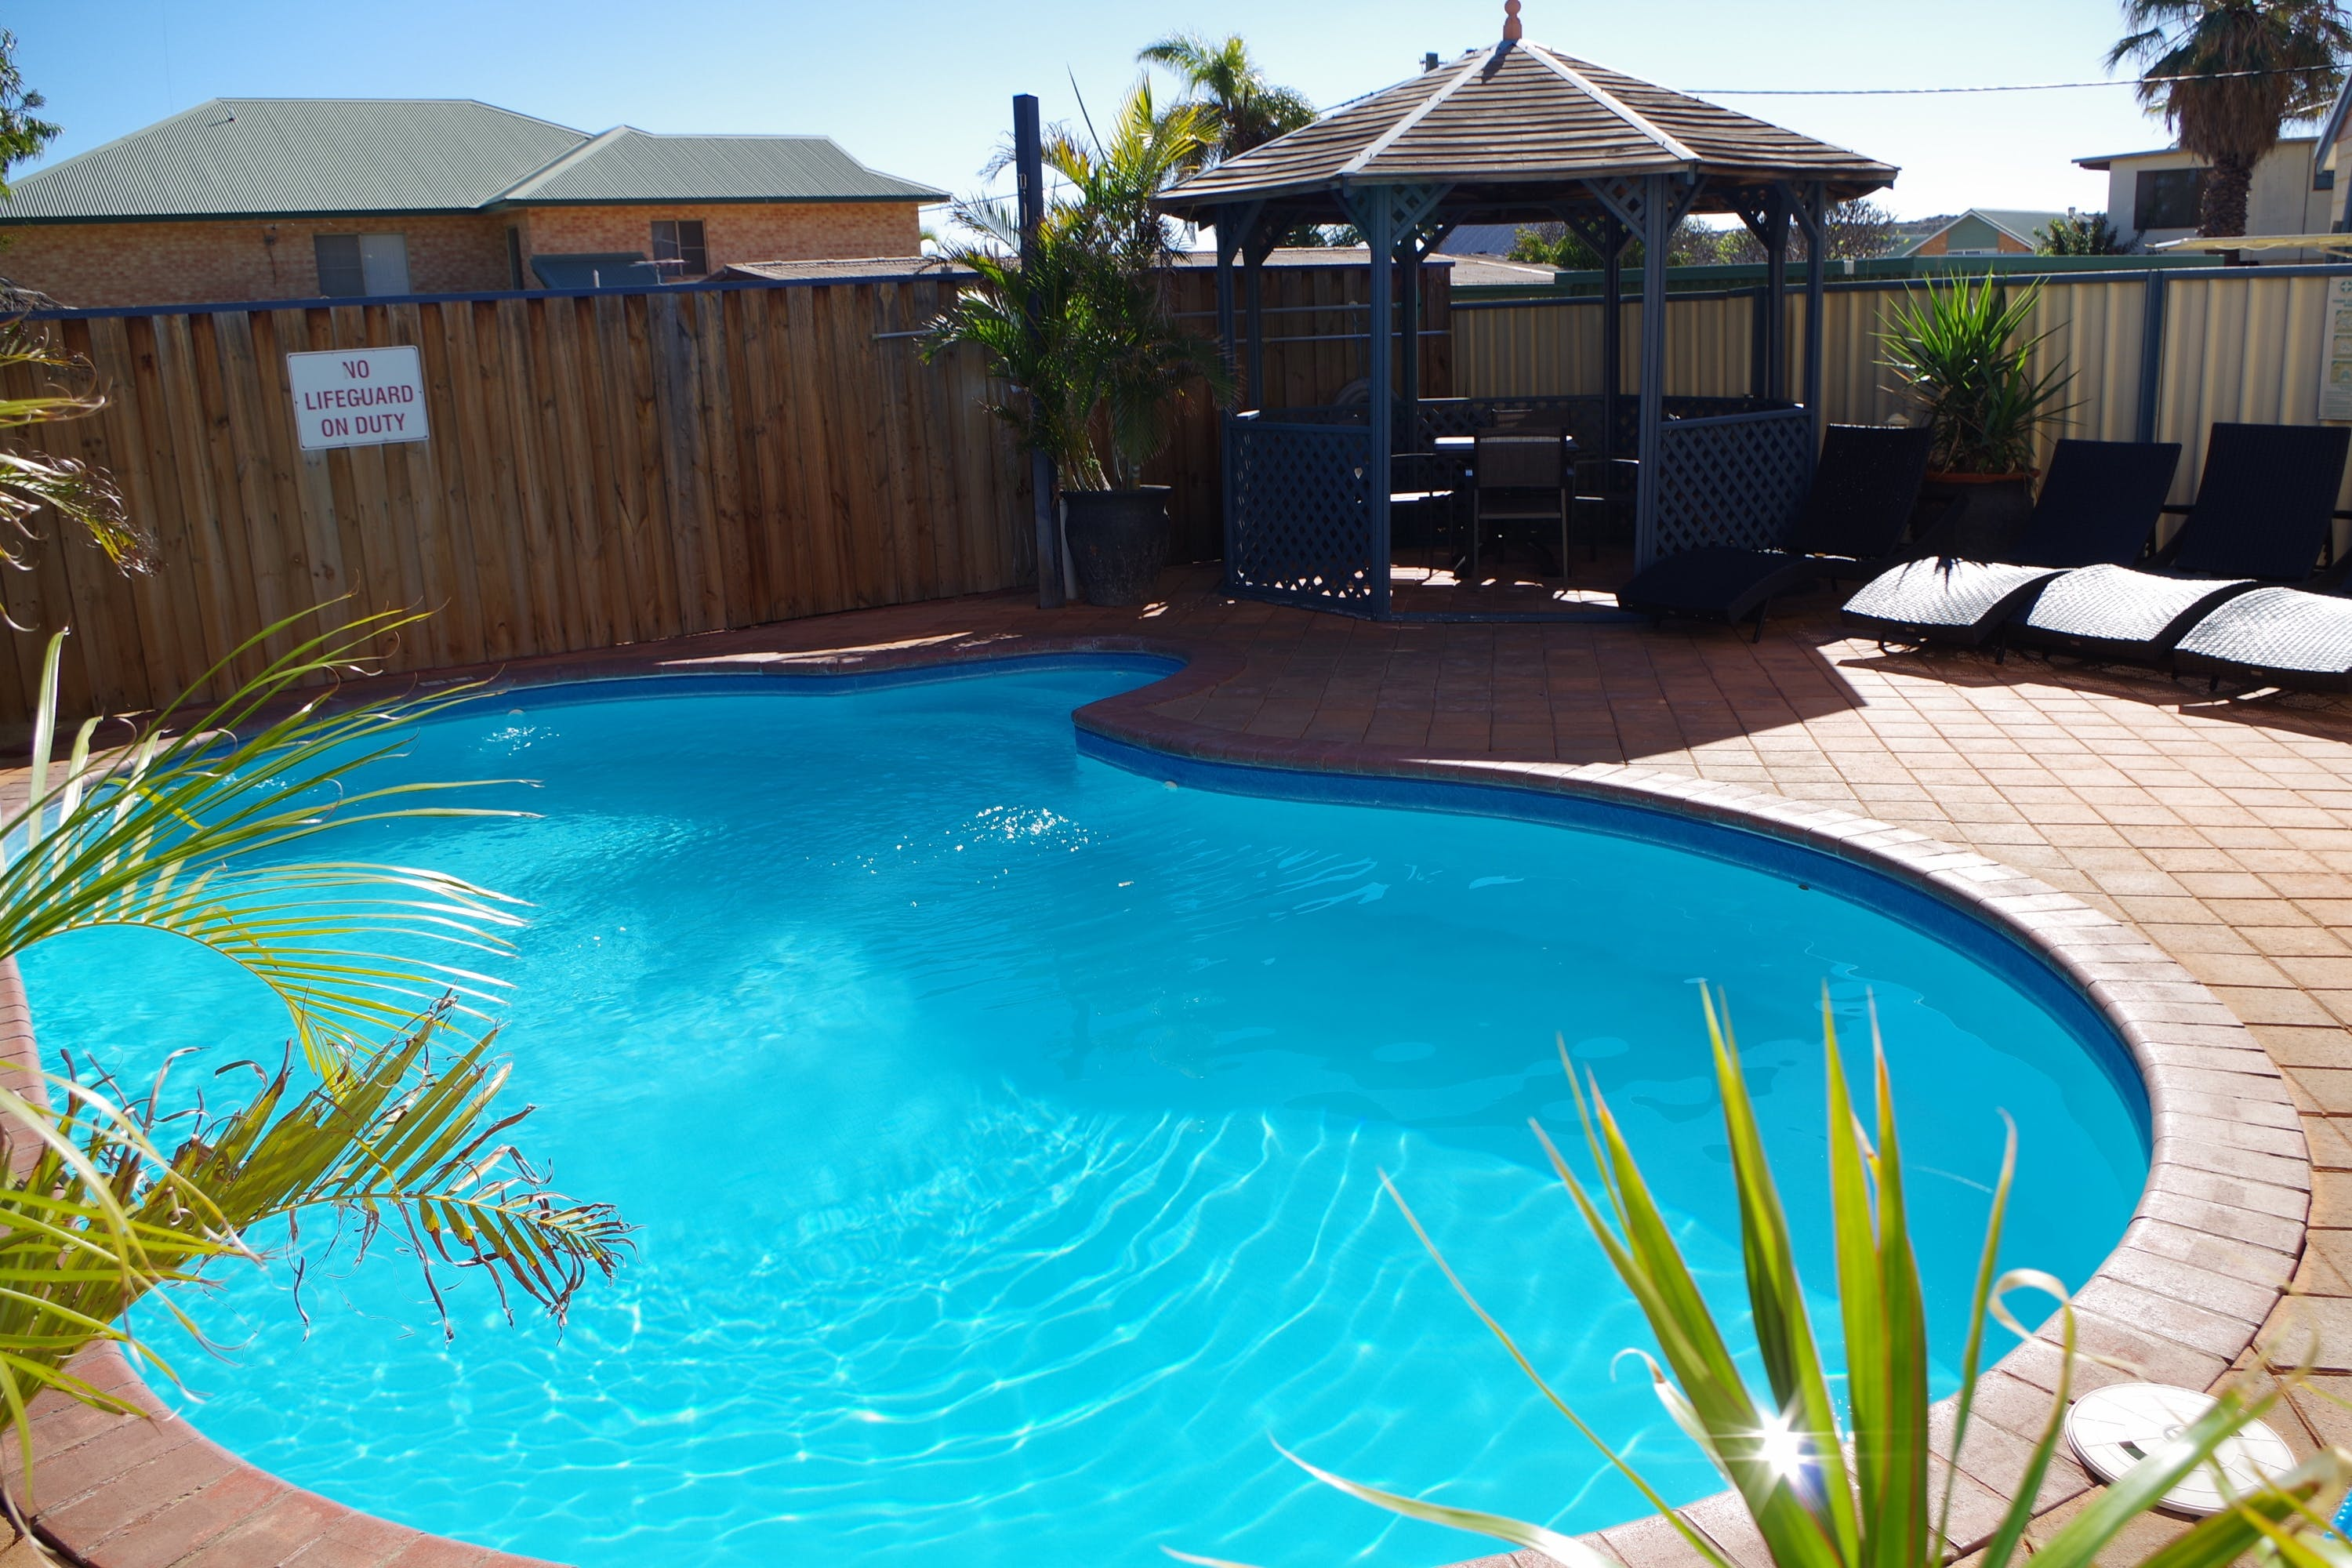 Searching for kalbarri houses. Look no further than Kalbarri Blue Ocean Villas 1